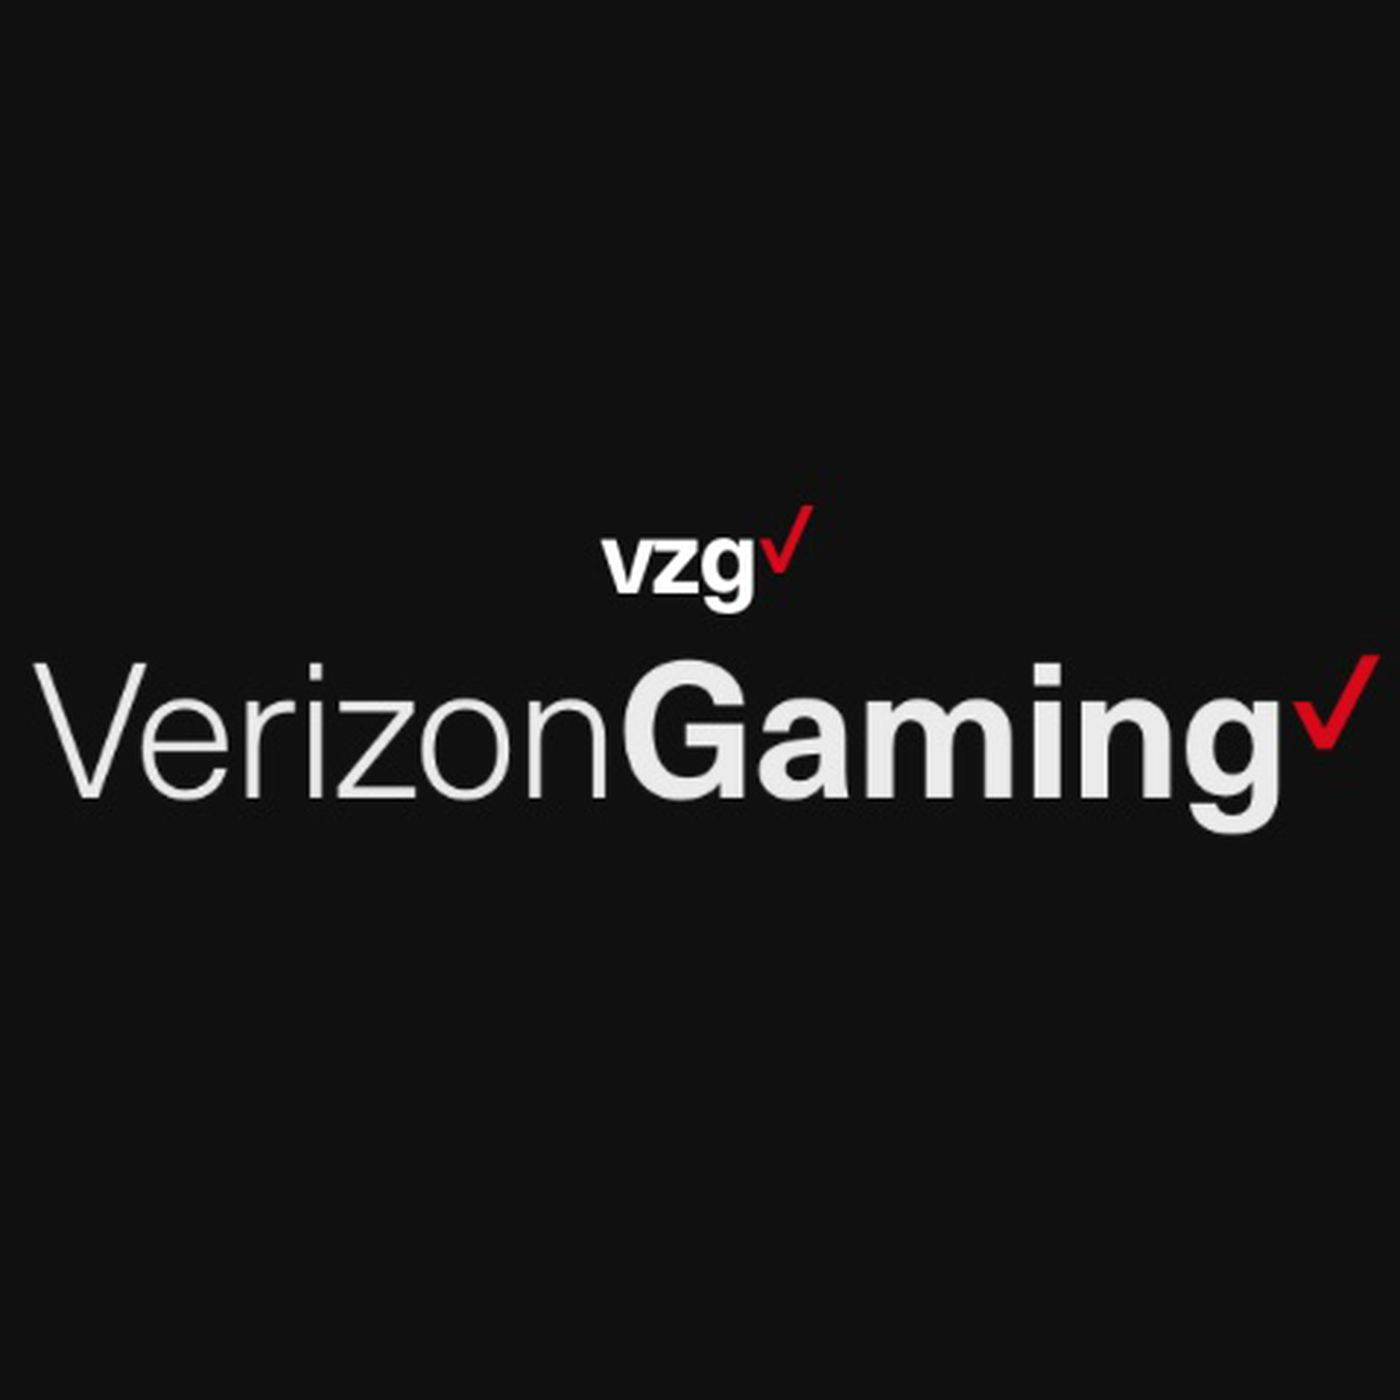 theverge.com - Chris Welch - Exclusive: Verizon is quietly testing its own Netflix-style cloud gaming service